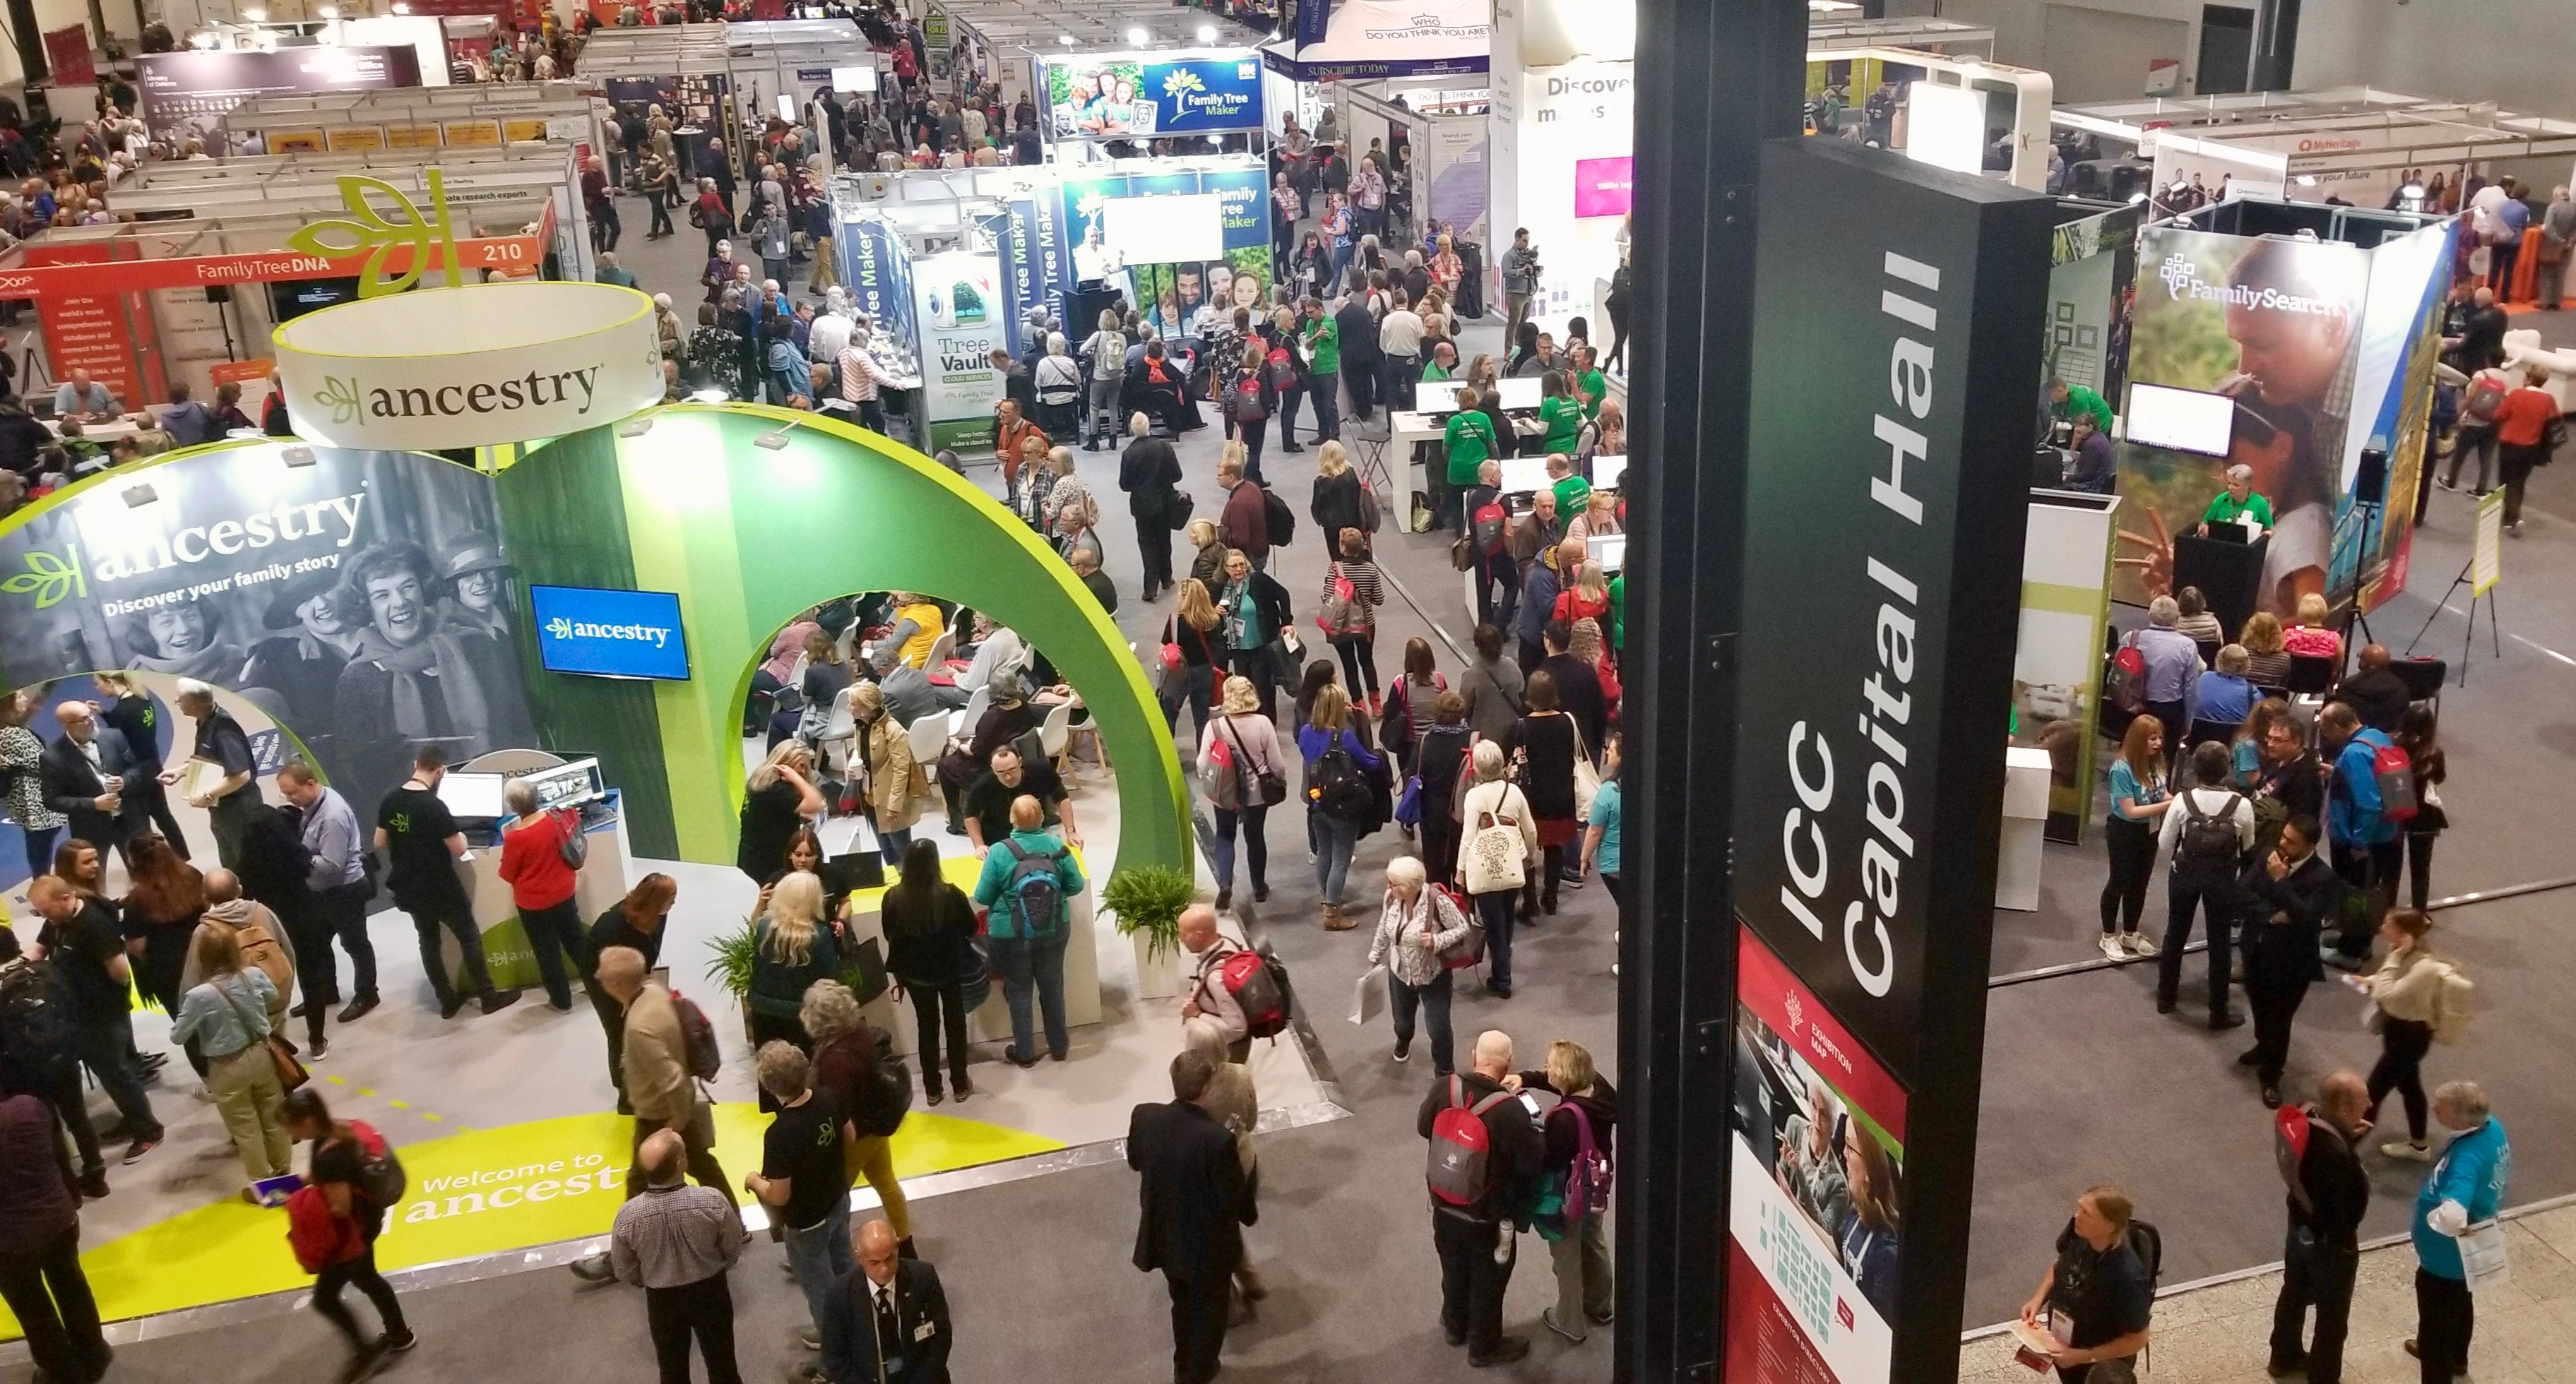 RootsTech London attendees fill the London ExCel exhibition hall on Thursday, Oct 24, 2019.